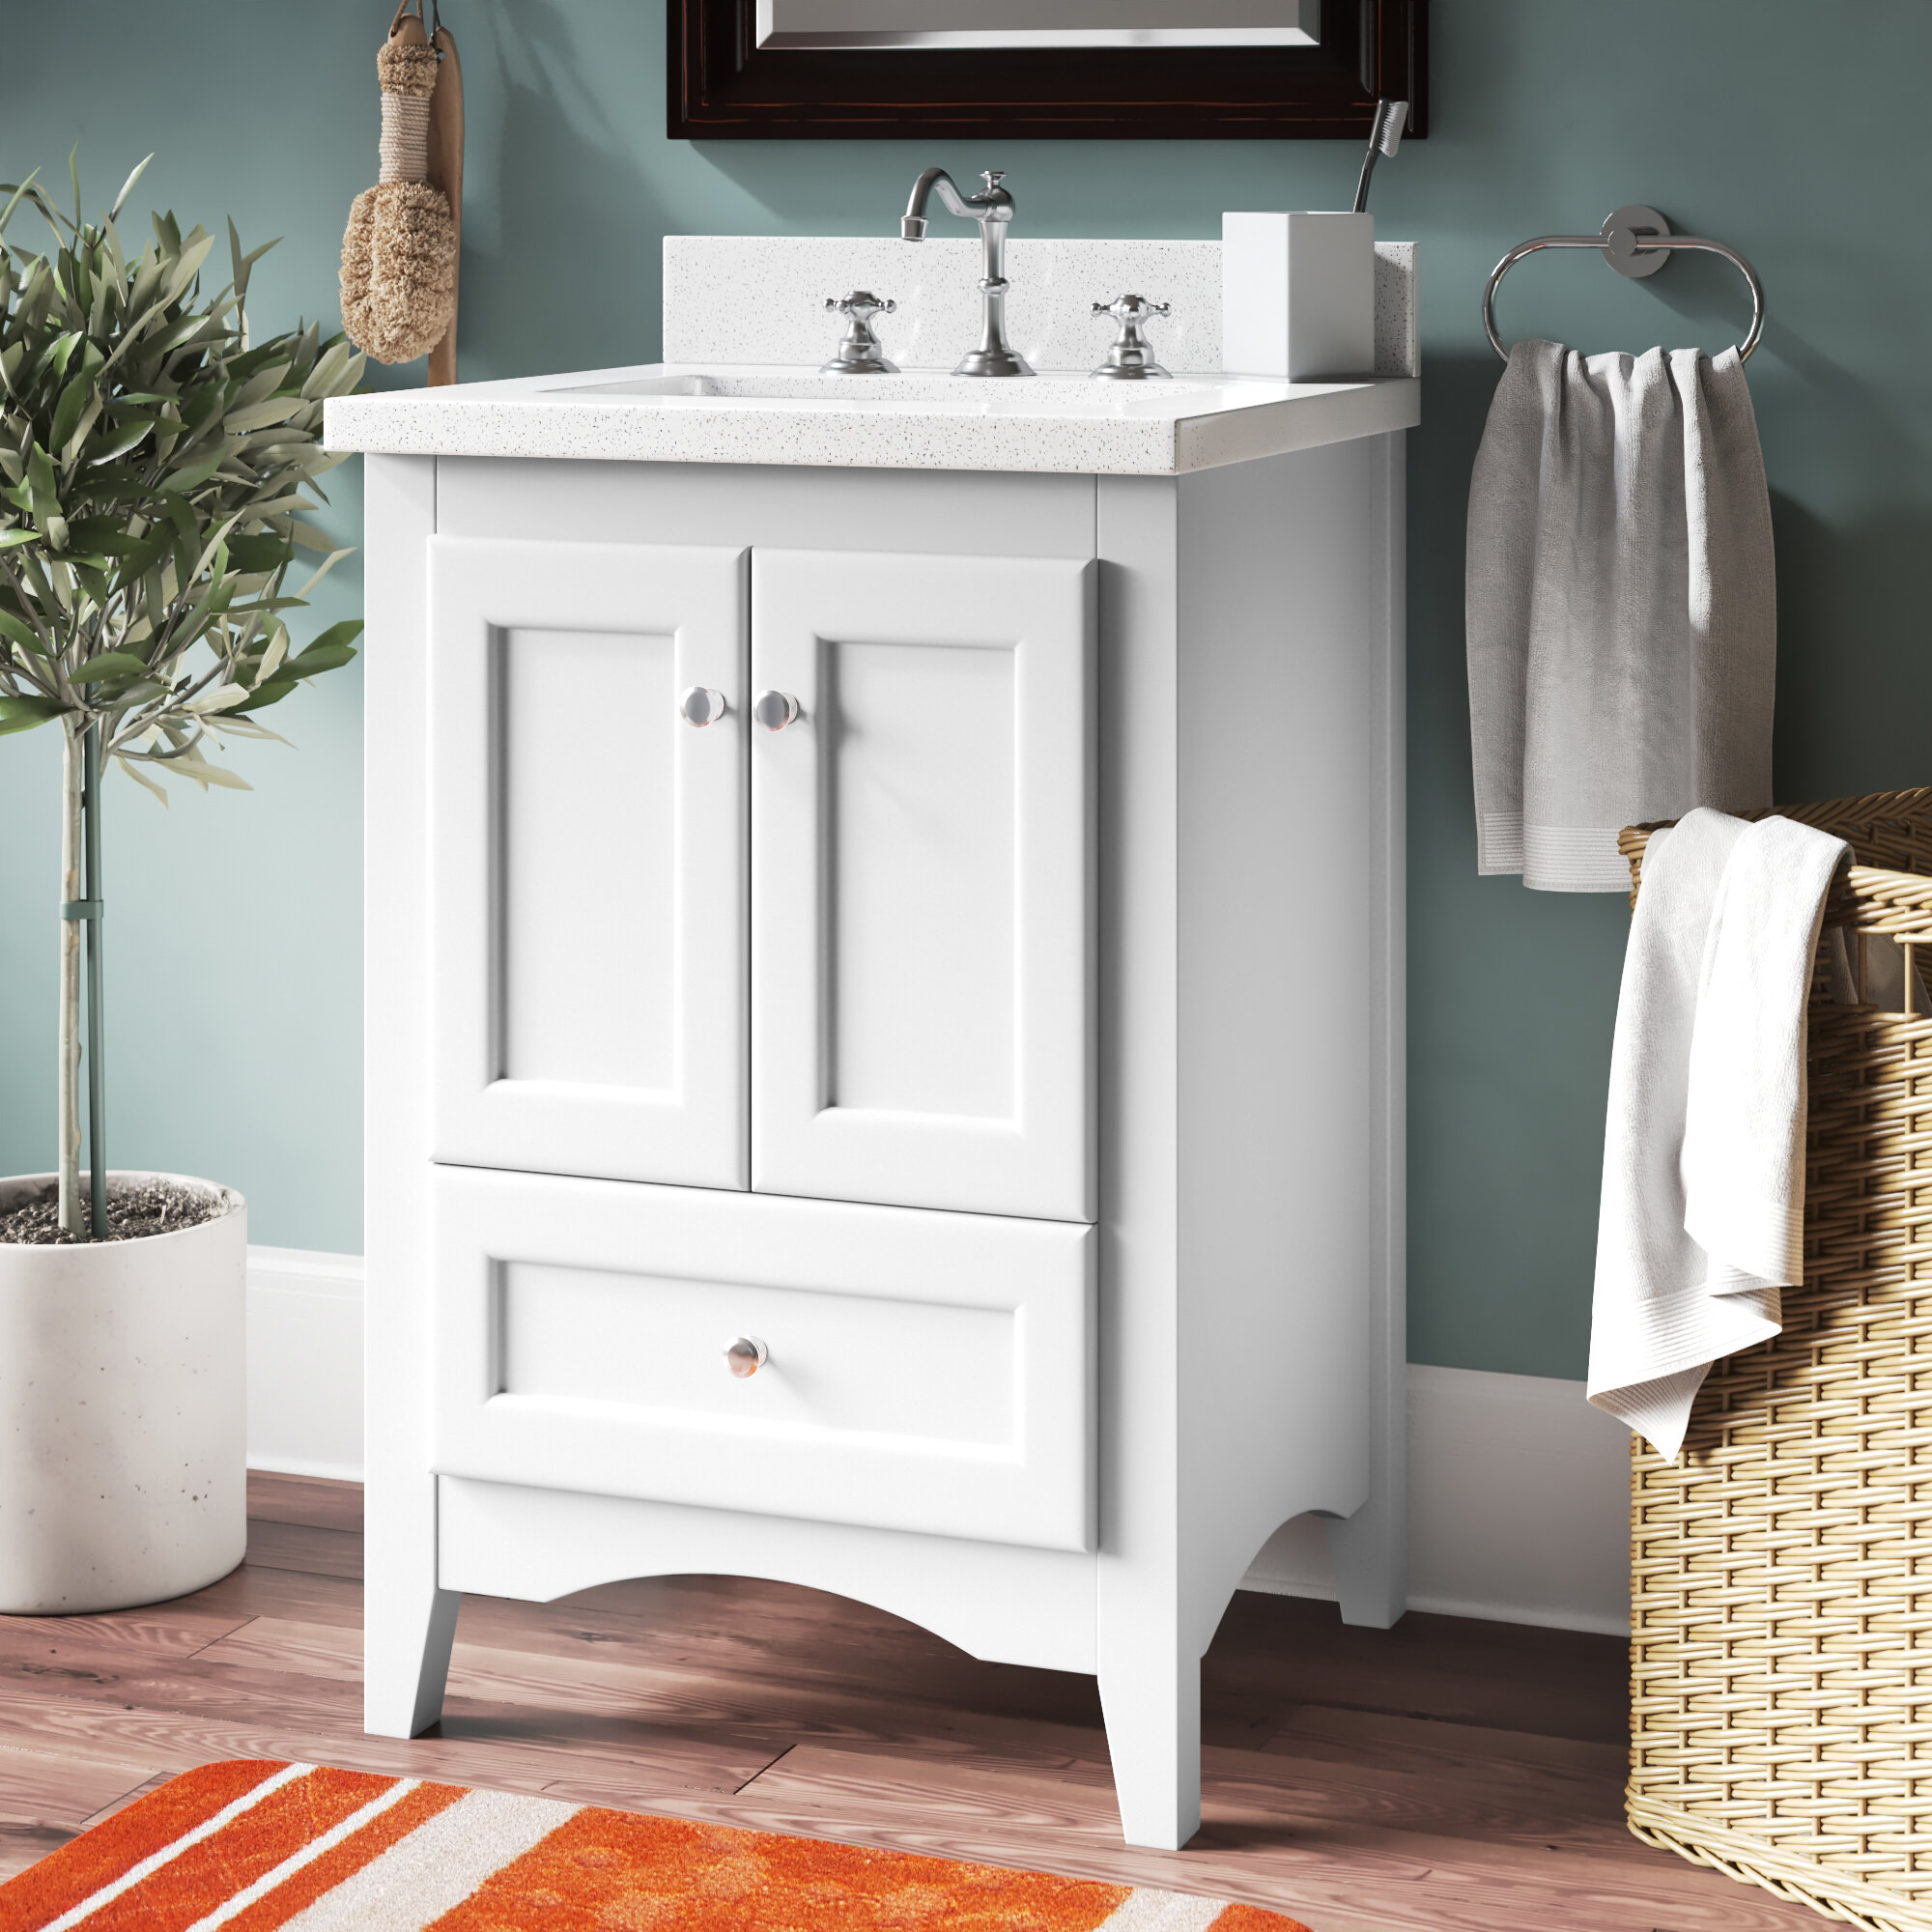 Birch Lane Prentice 24 Single Bathroom Vanity Set Reviews Wayfair